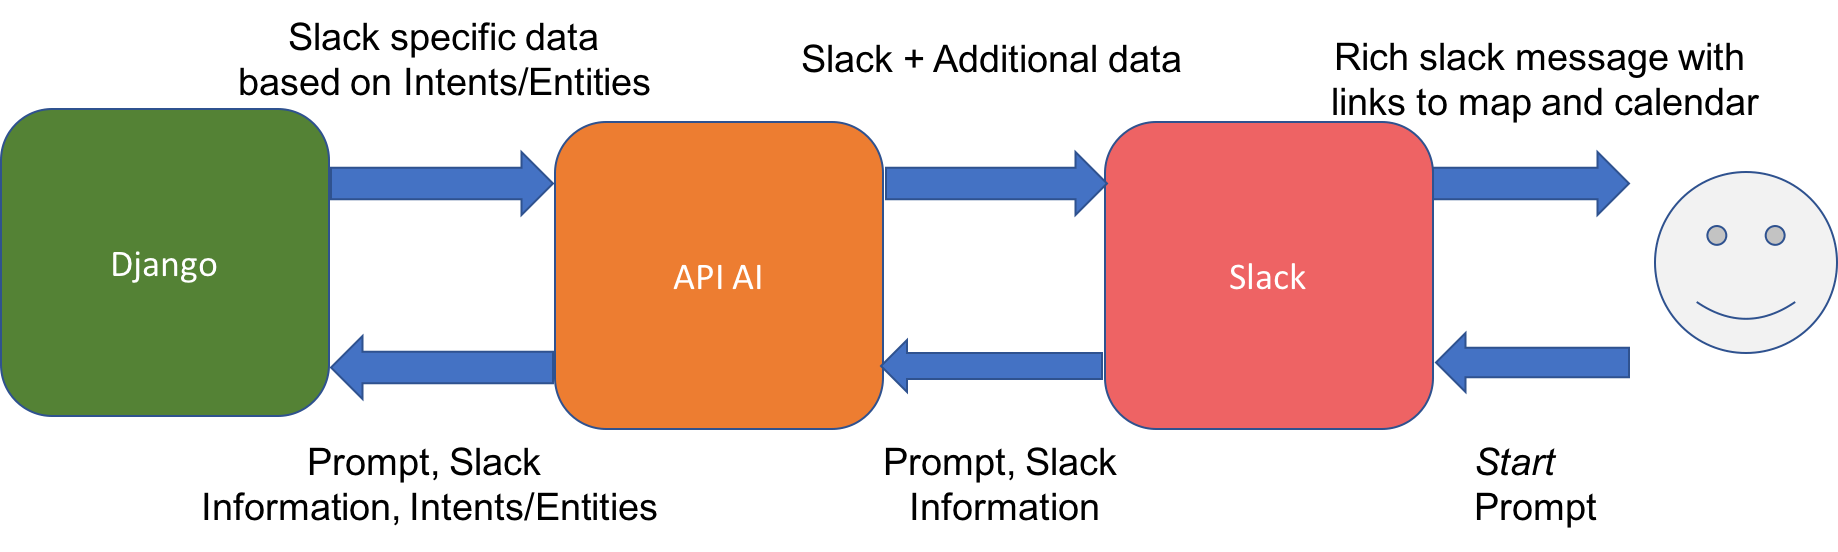 hight resolution of diagram of api